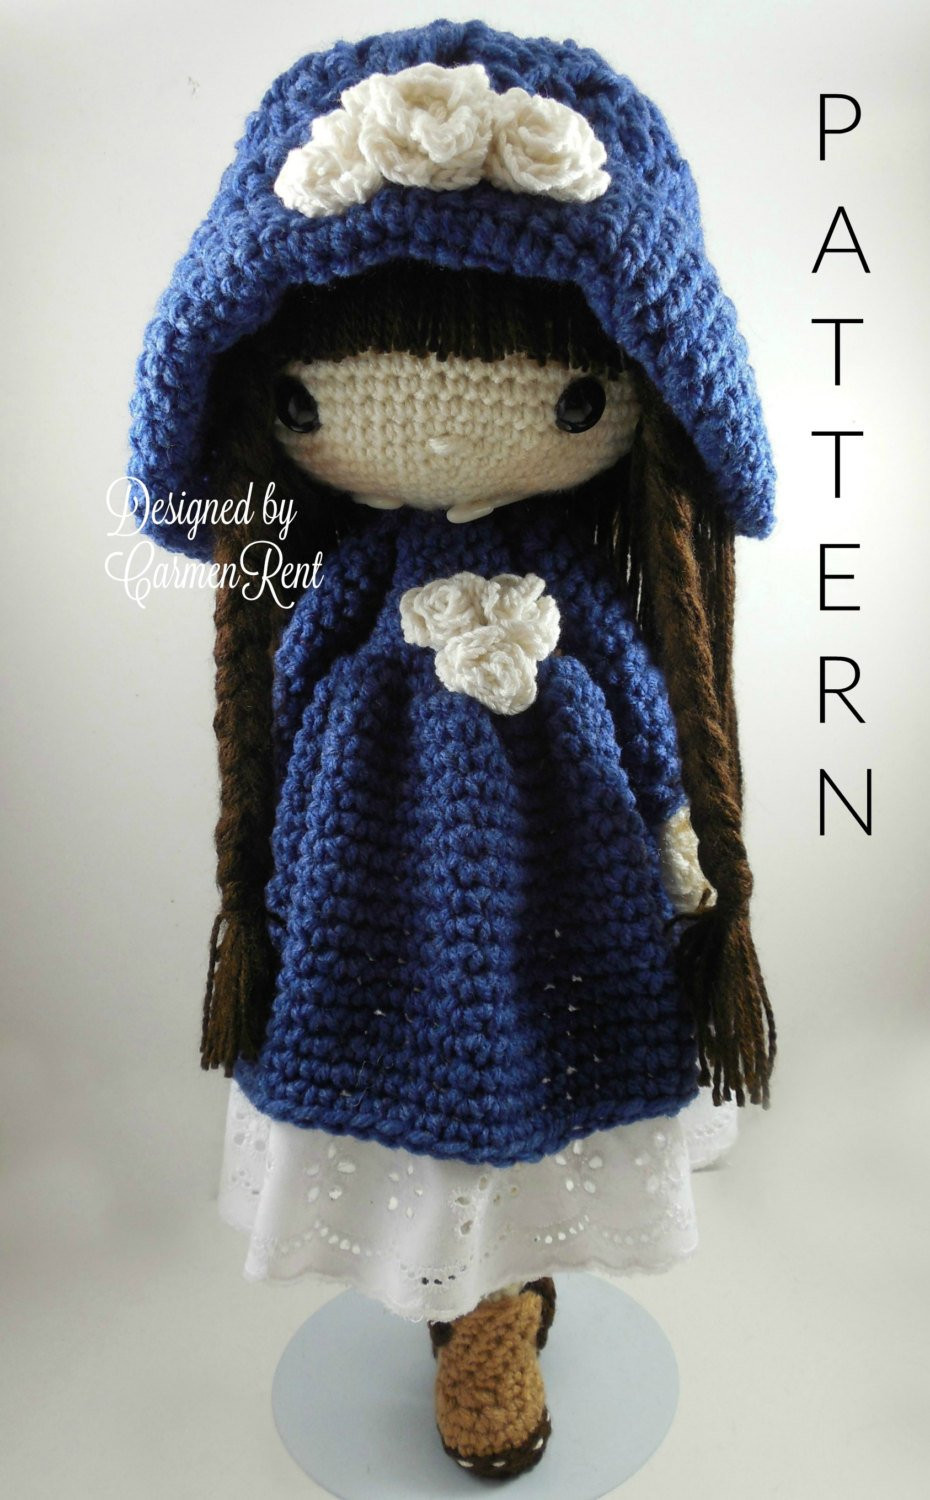 Crochet Doll Awesome Matilda Amigurumi Doll Crochet Pattern Pdf Of Crochet Doll Inspirational Snow White Doll Crochet Pattern